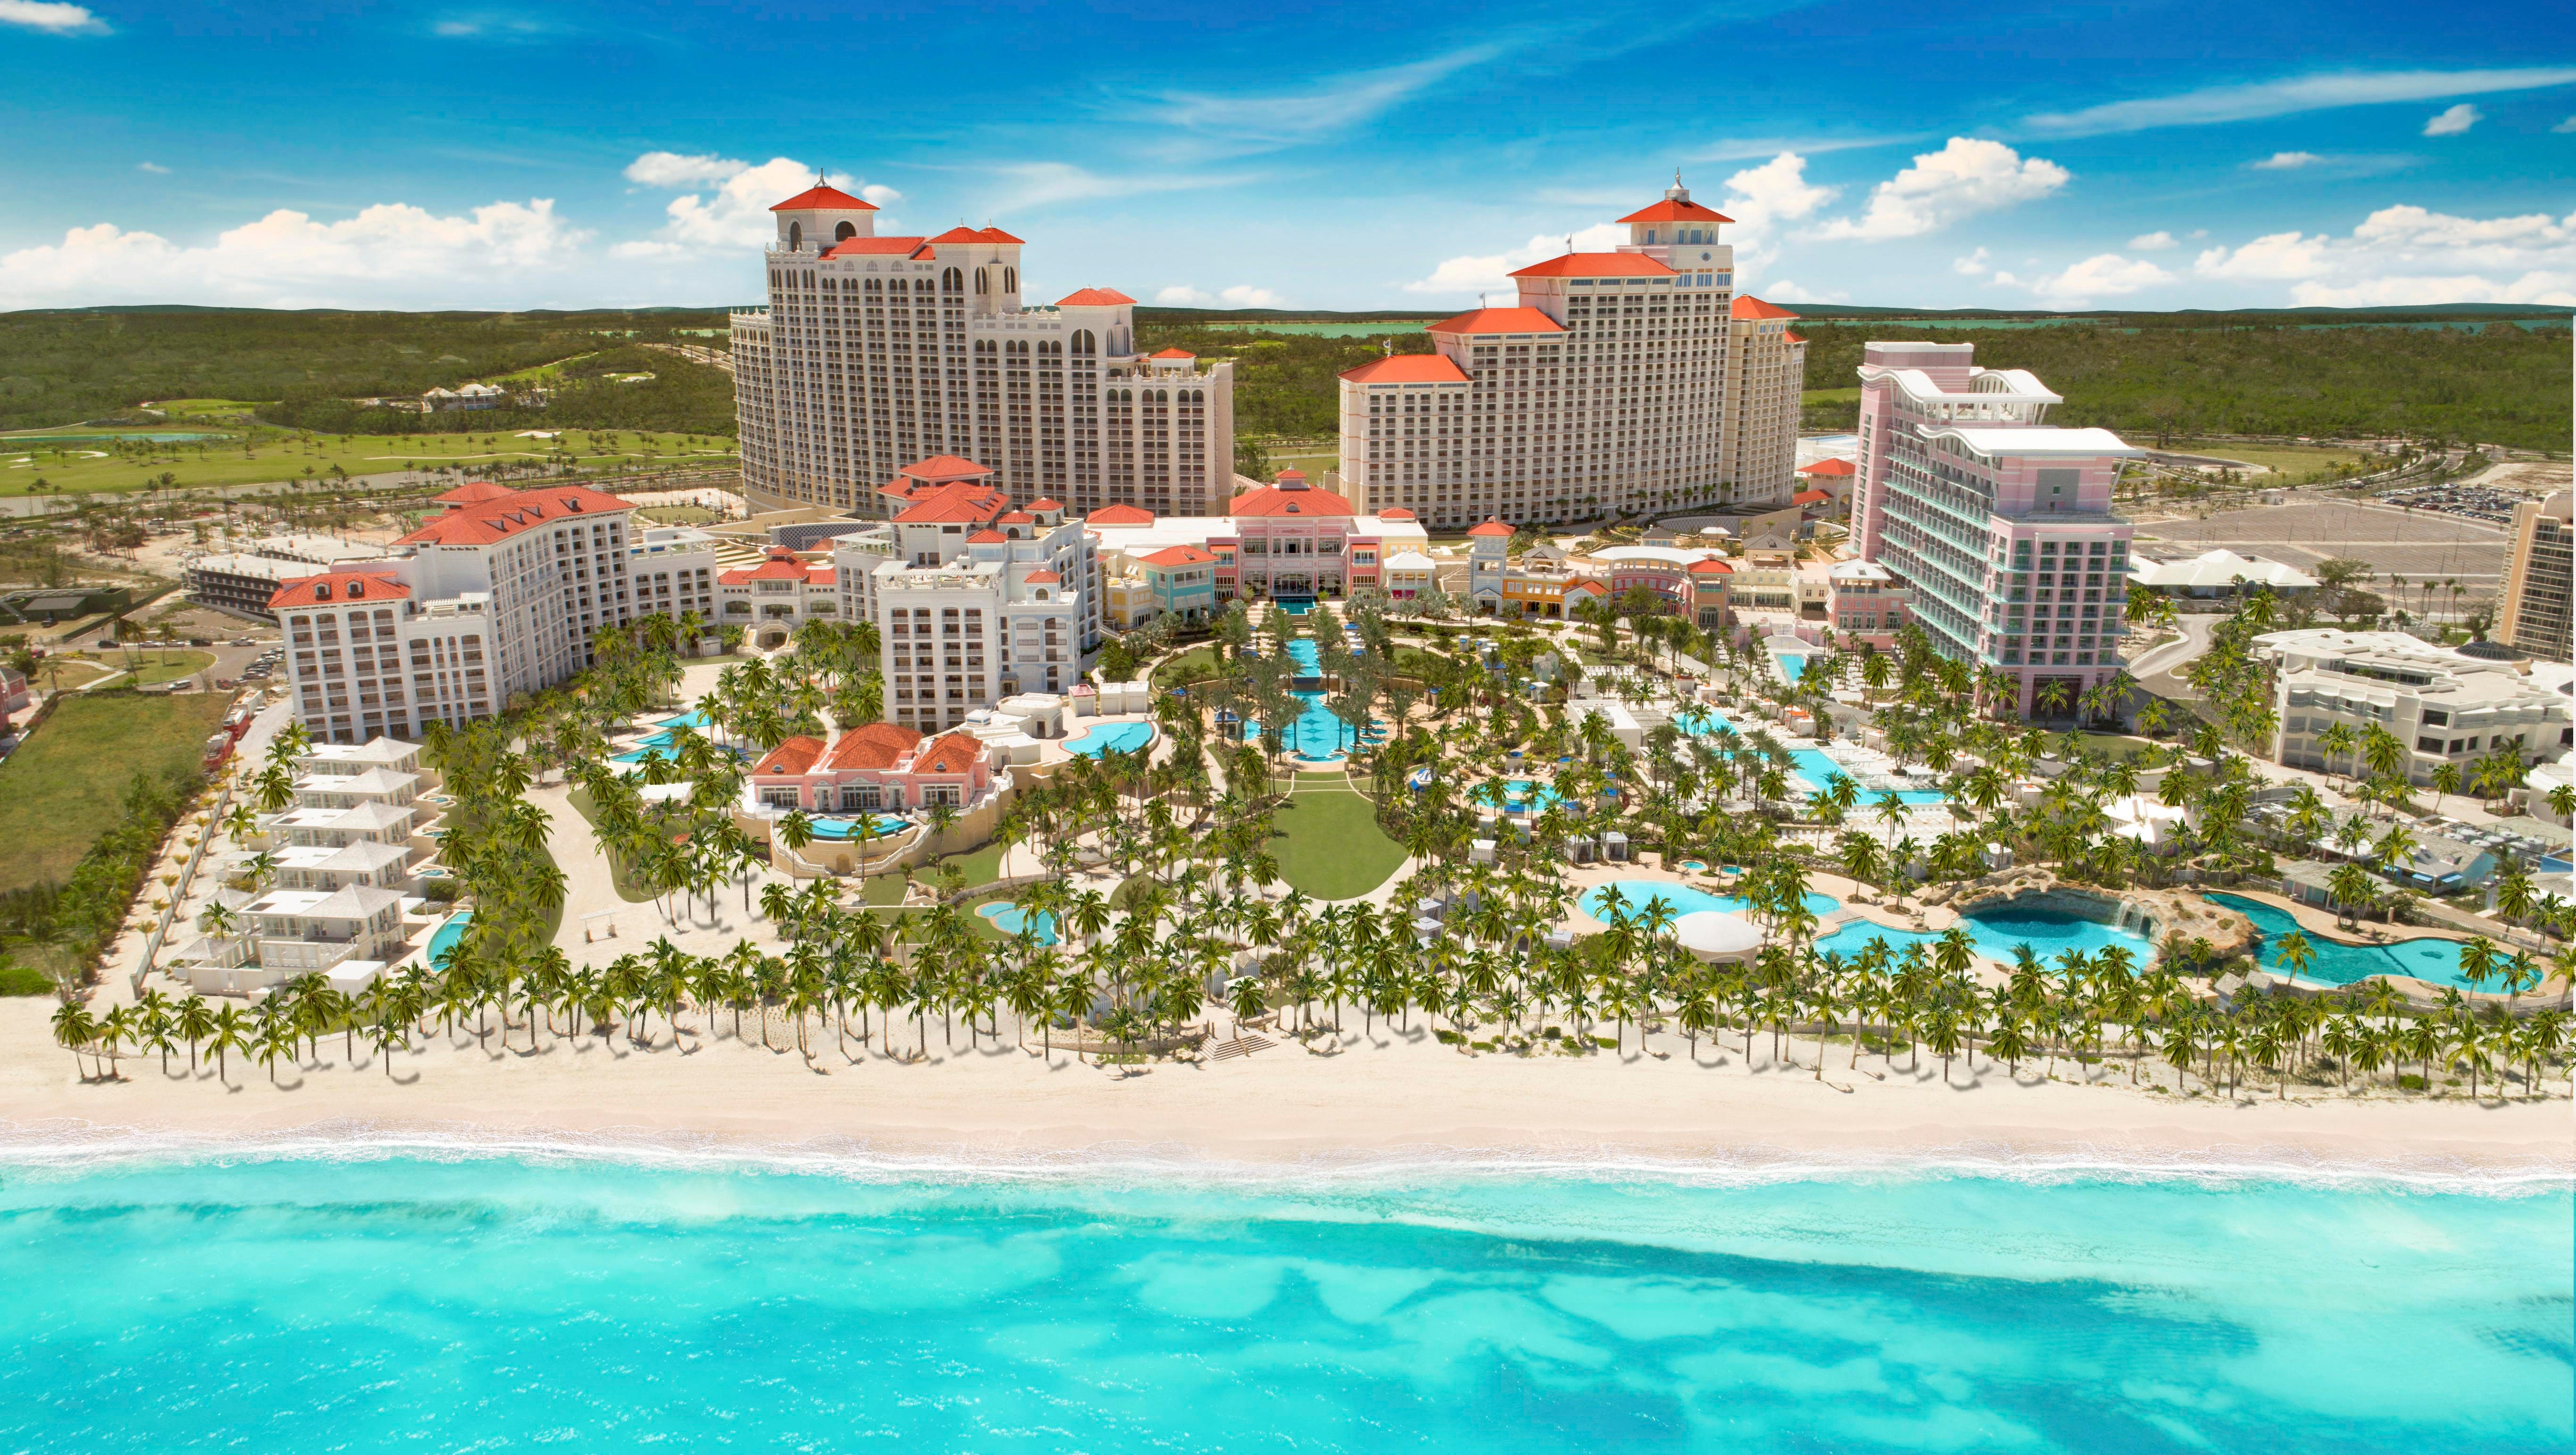 Baha Mar Huge Casino And Hotel Complex In The Bahamas Is Fully Open